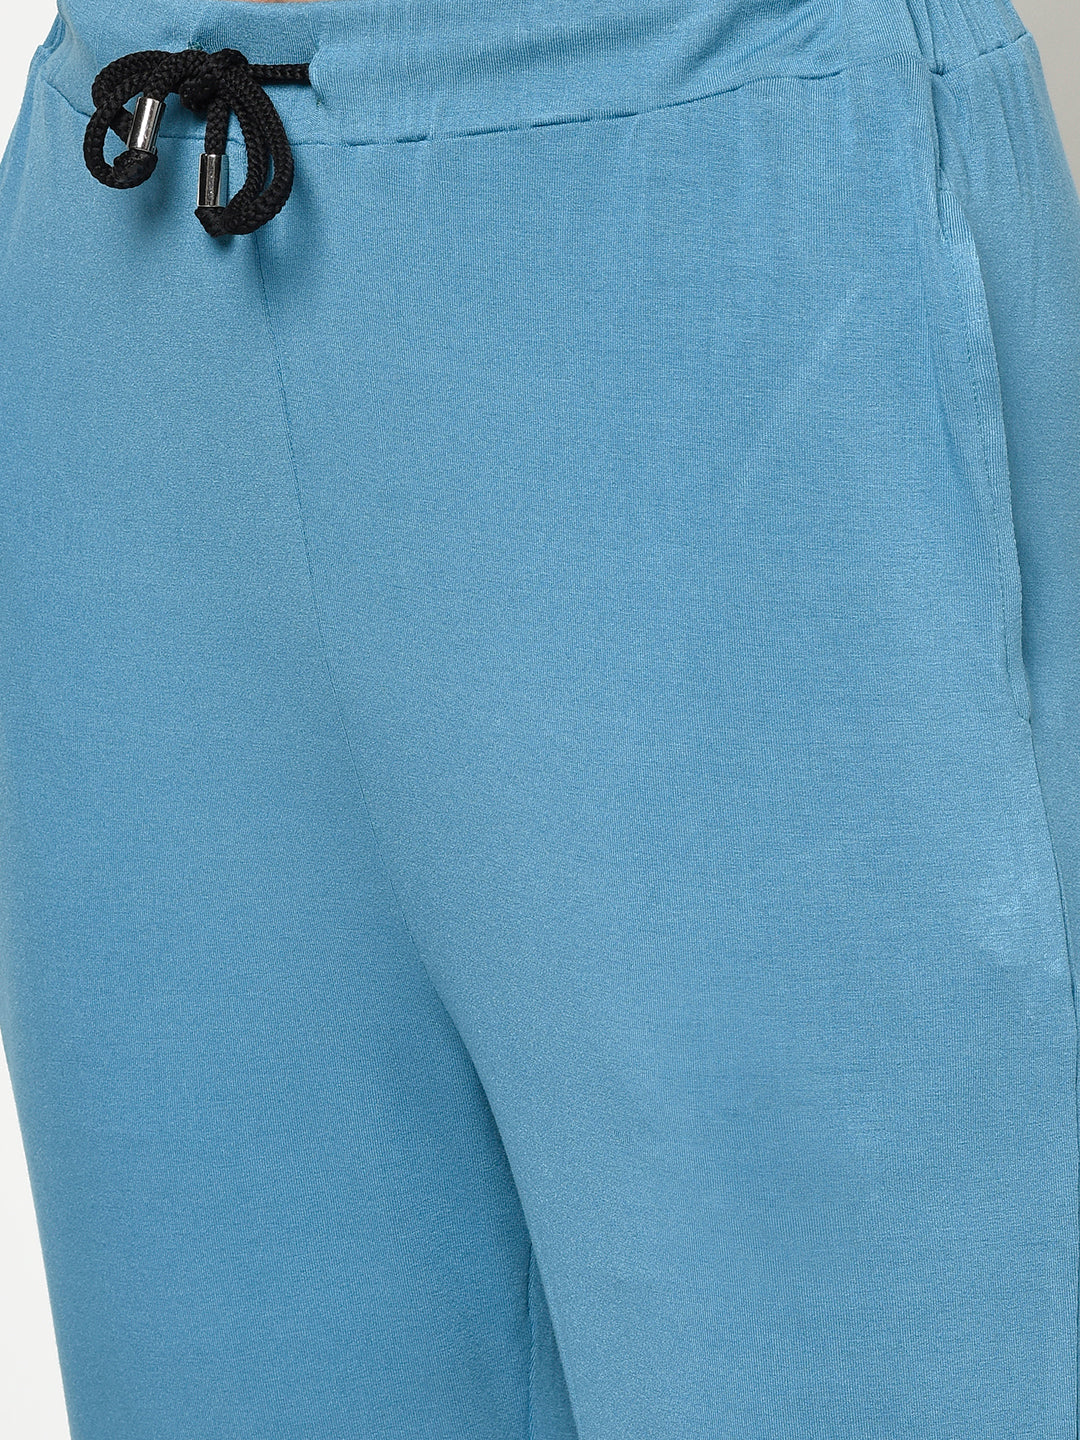 DUSTY BLUE VISCOSE LADIES 2 PC NIGHT SUIT - Avsoy